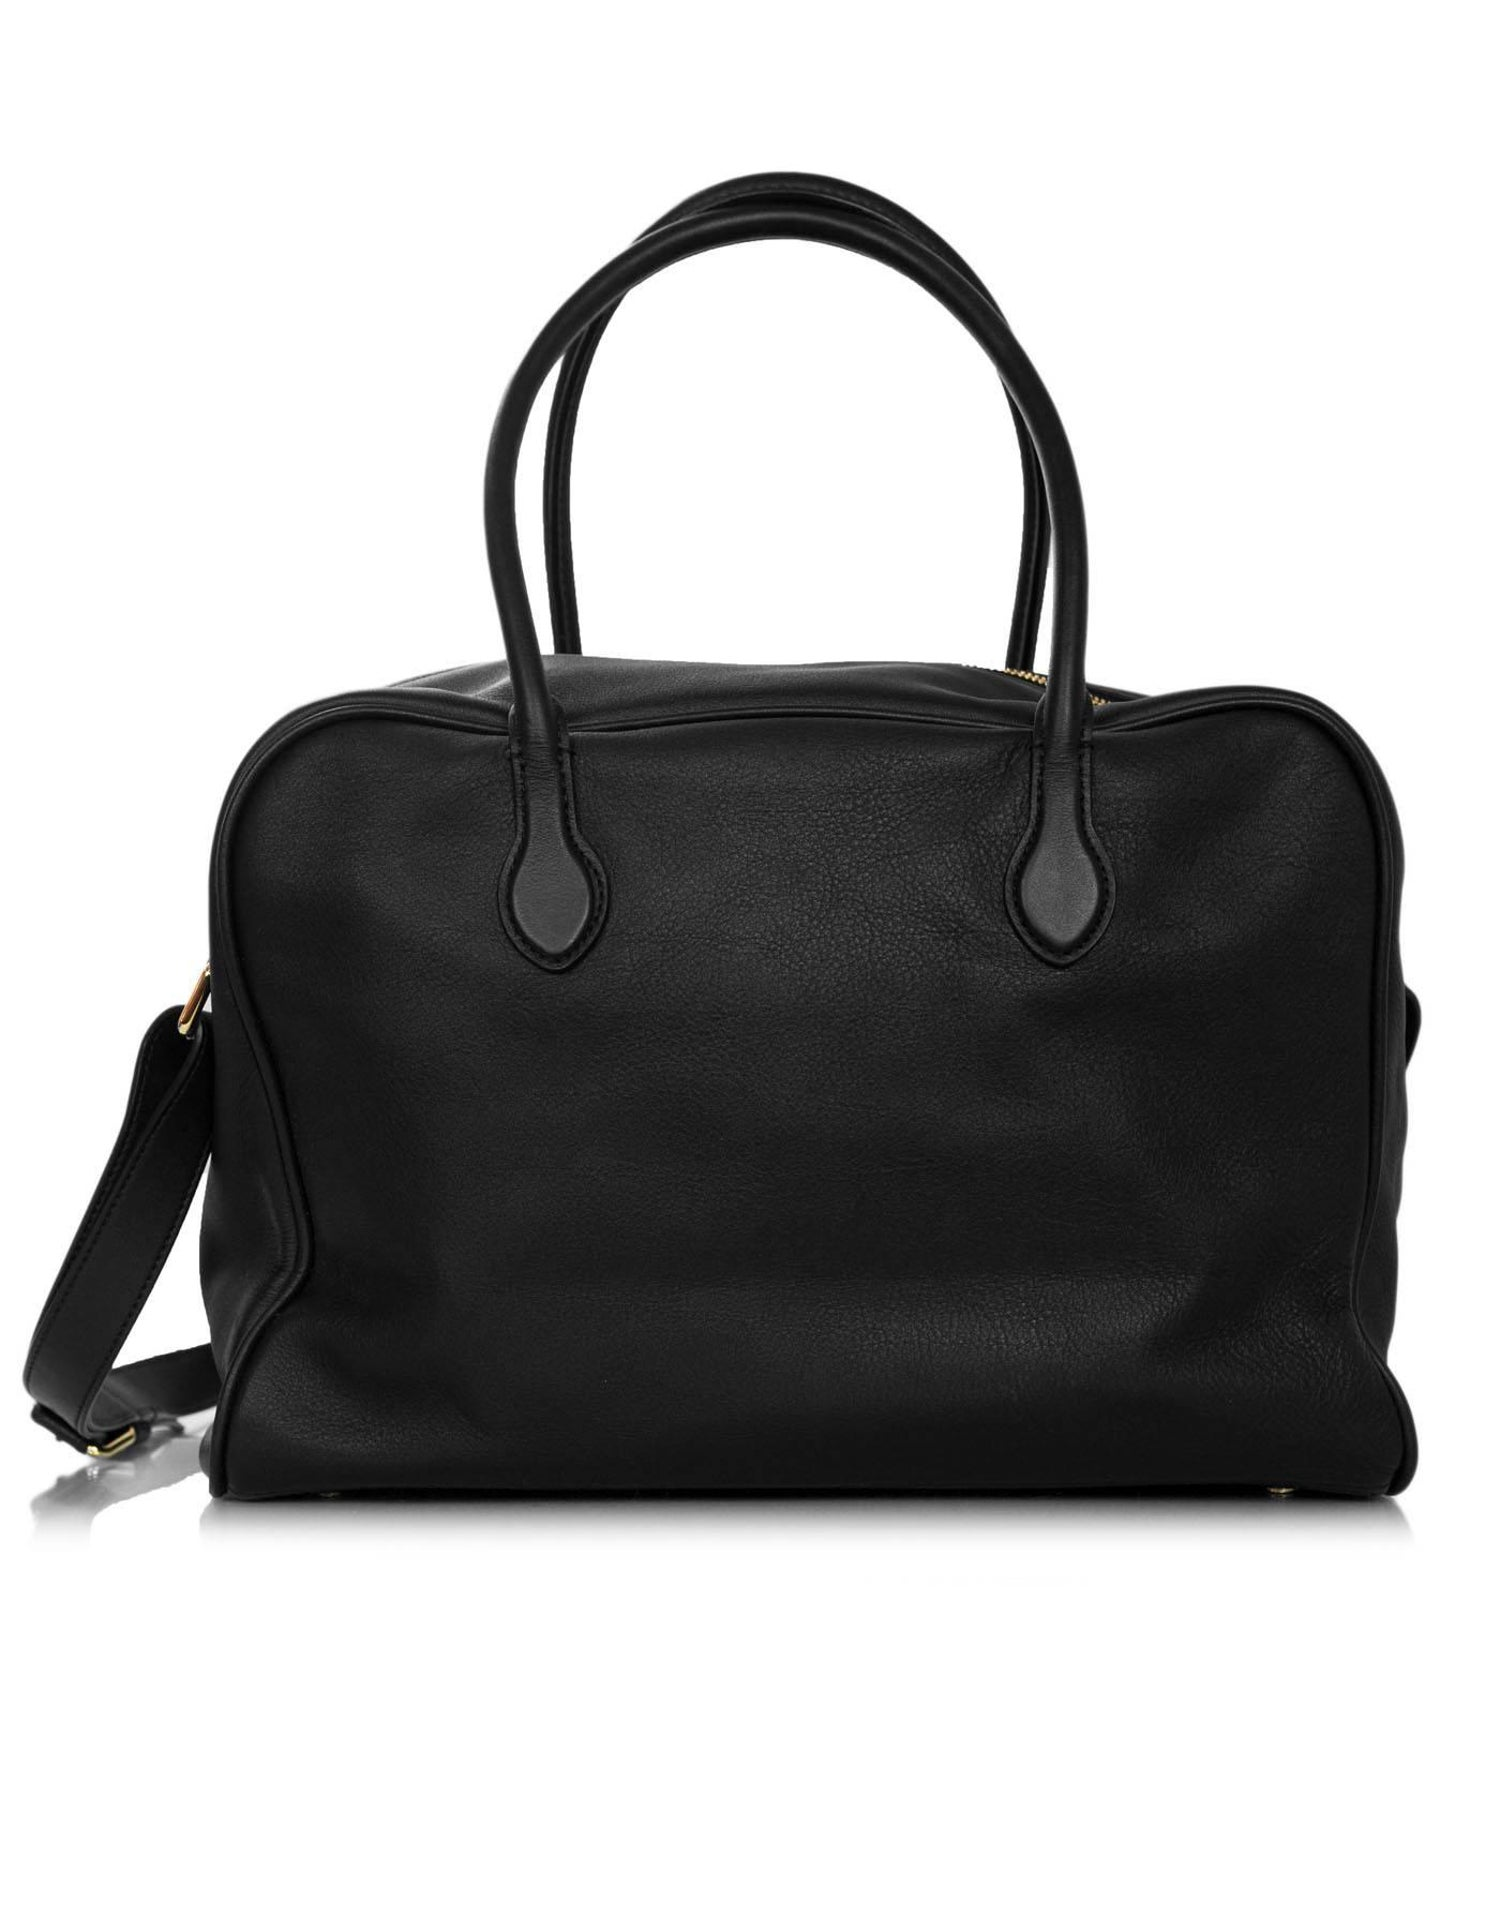 99380d5bf4 Balmain Black Leather Pierre Satchel Bag with Strap at 1stdibs